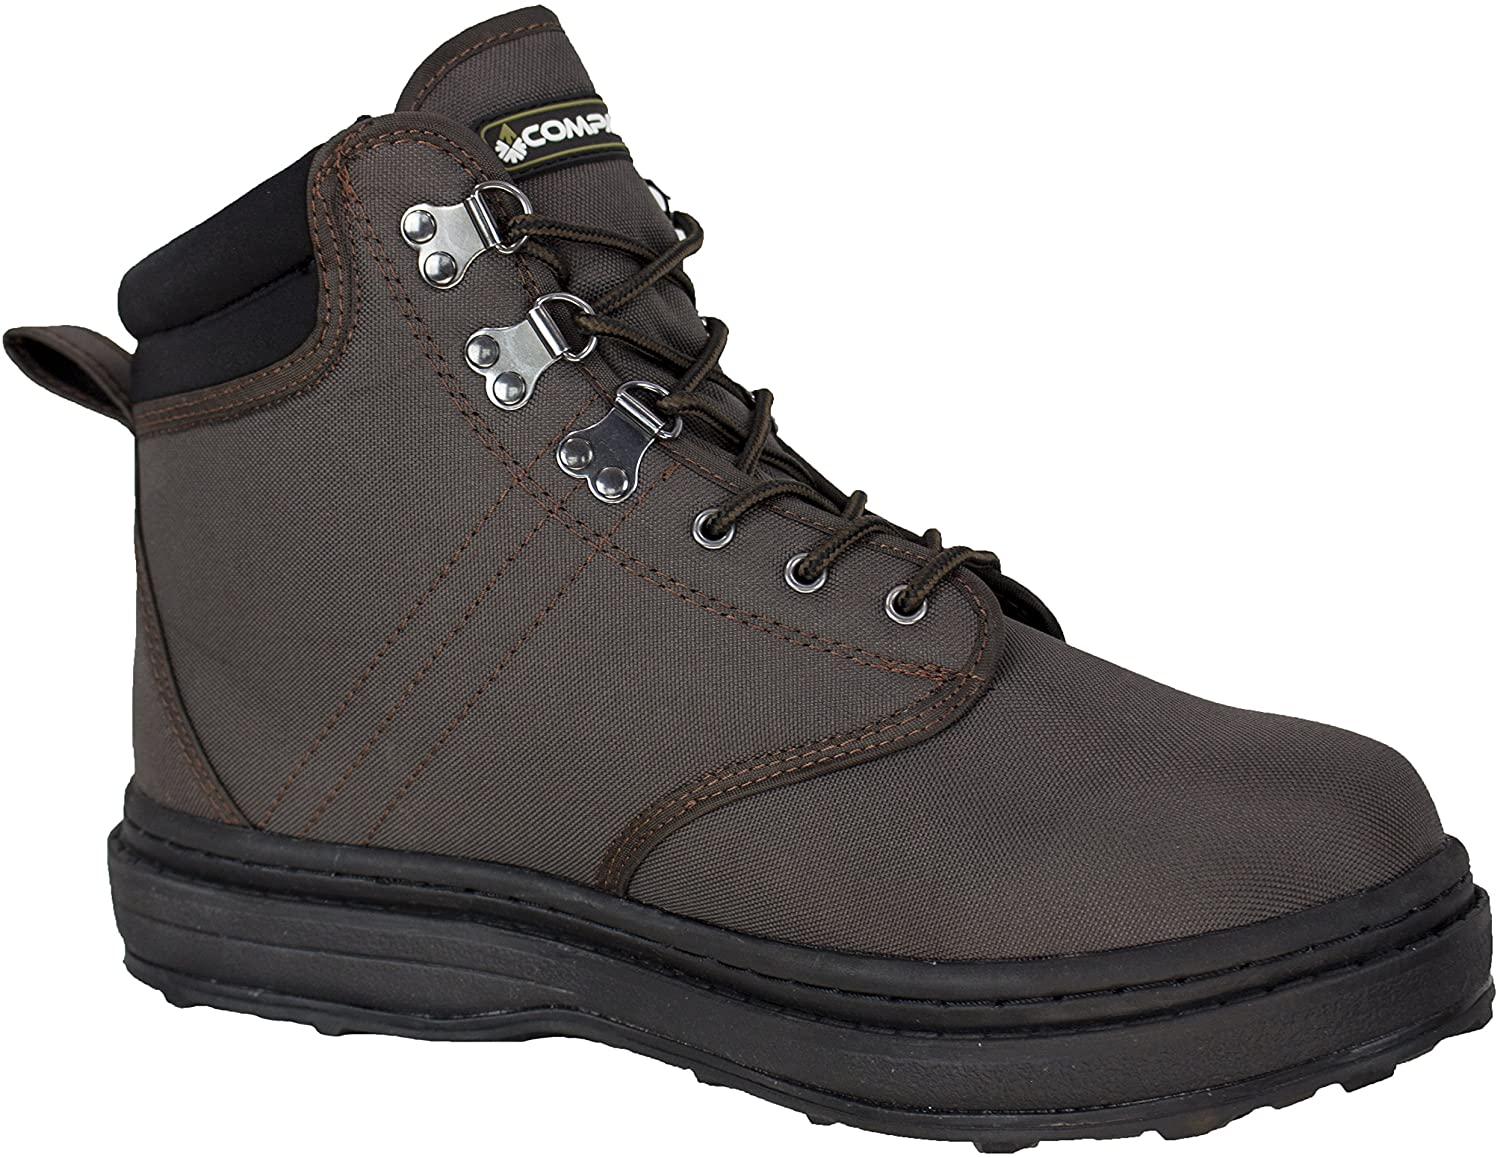 Comfortable wading boots